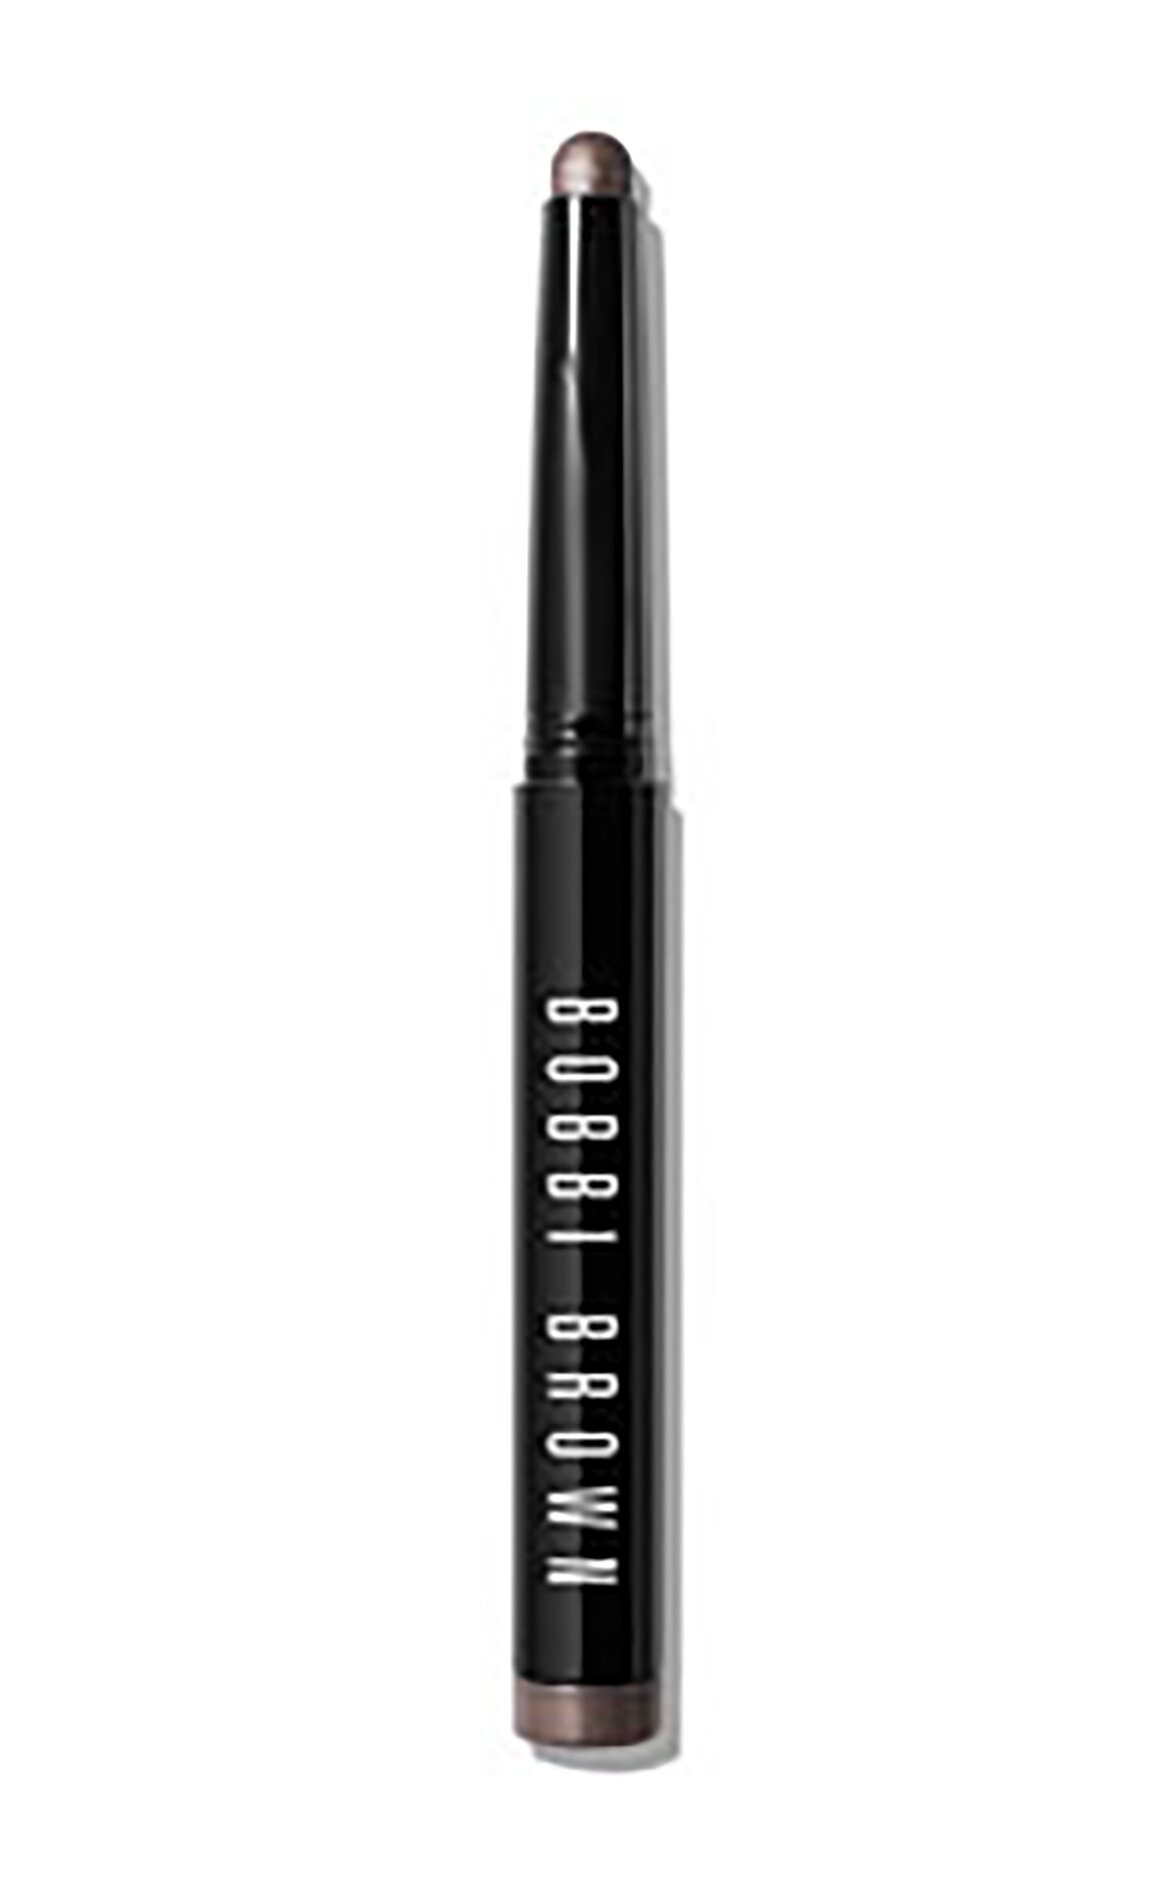 Bobbi Brown-Bobbi Brown Bark Krem Far